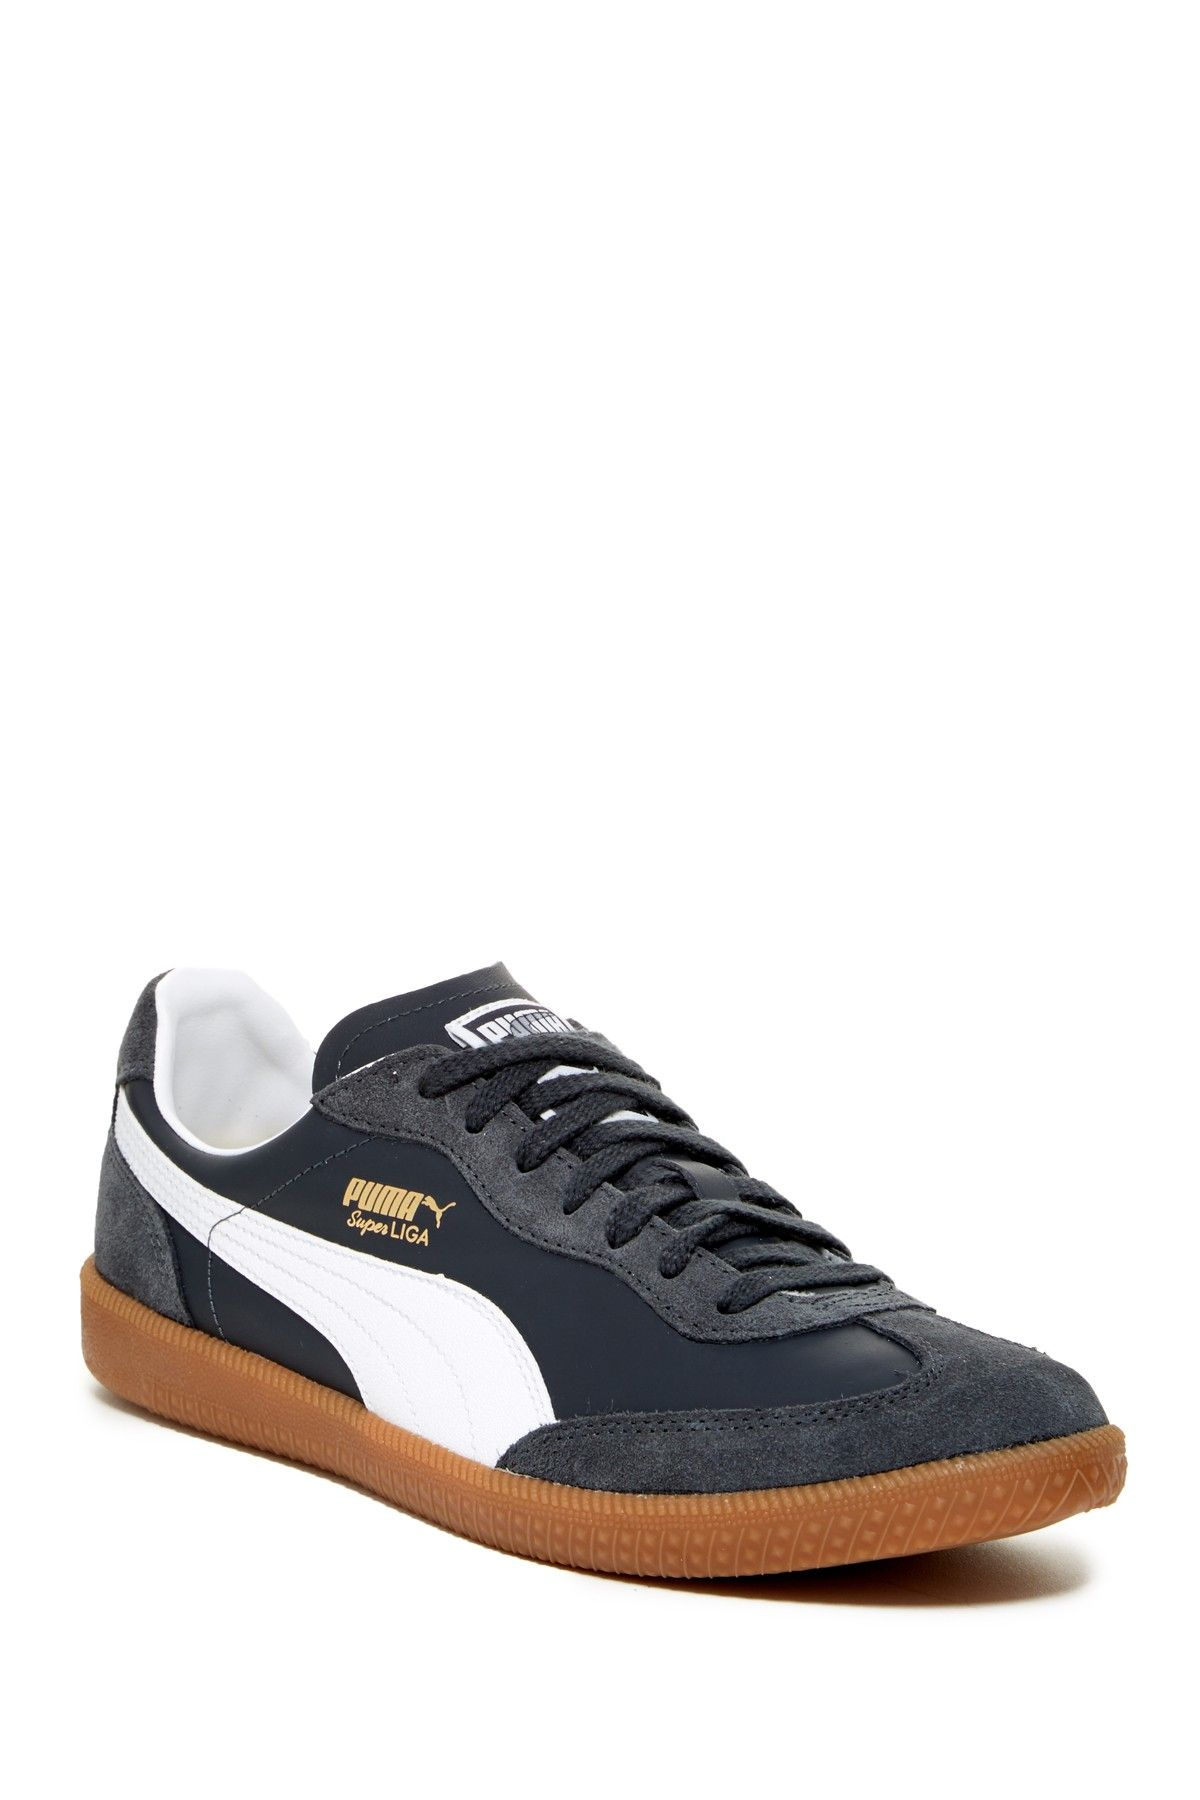 533ef63749118e PUMA - Super Liga OG Retro Sneaker at Nordstrom Rack. Free Shipping on  orders over  100.